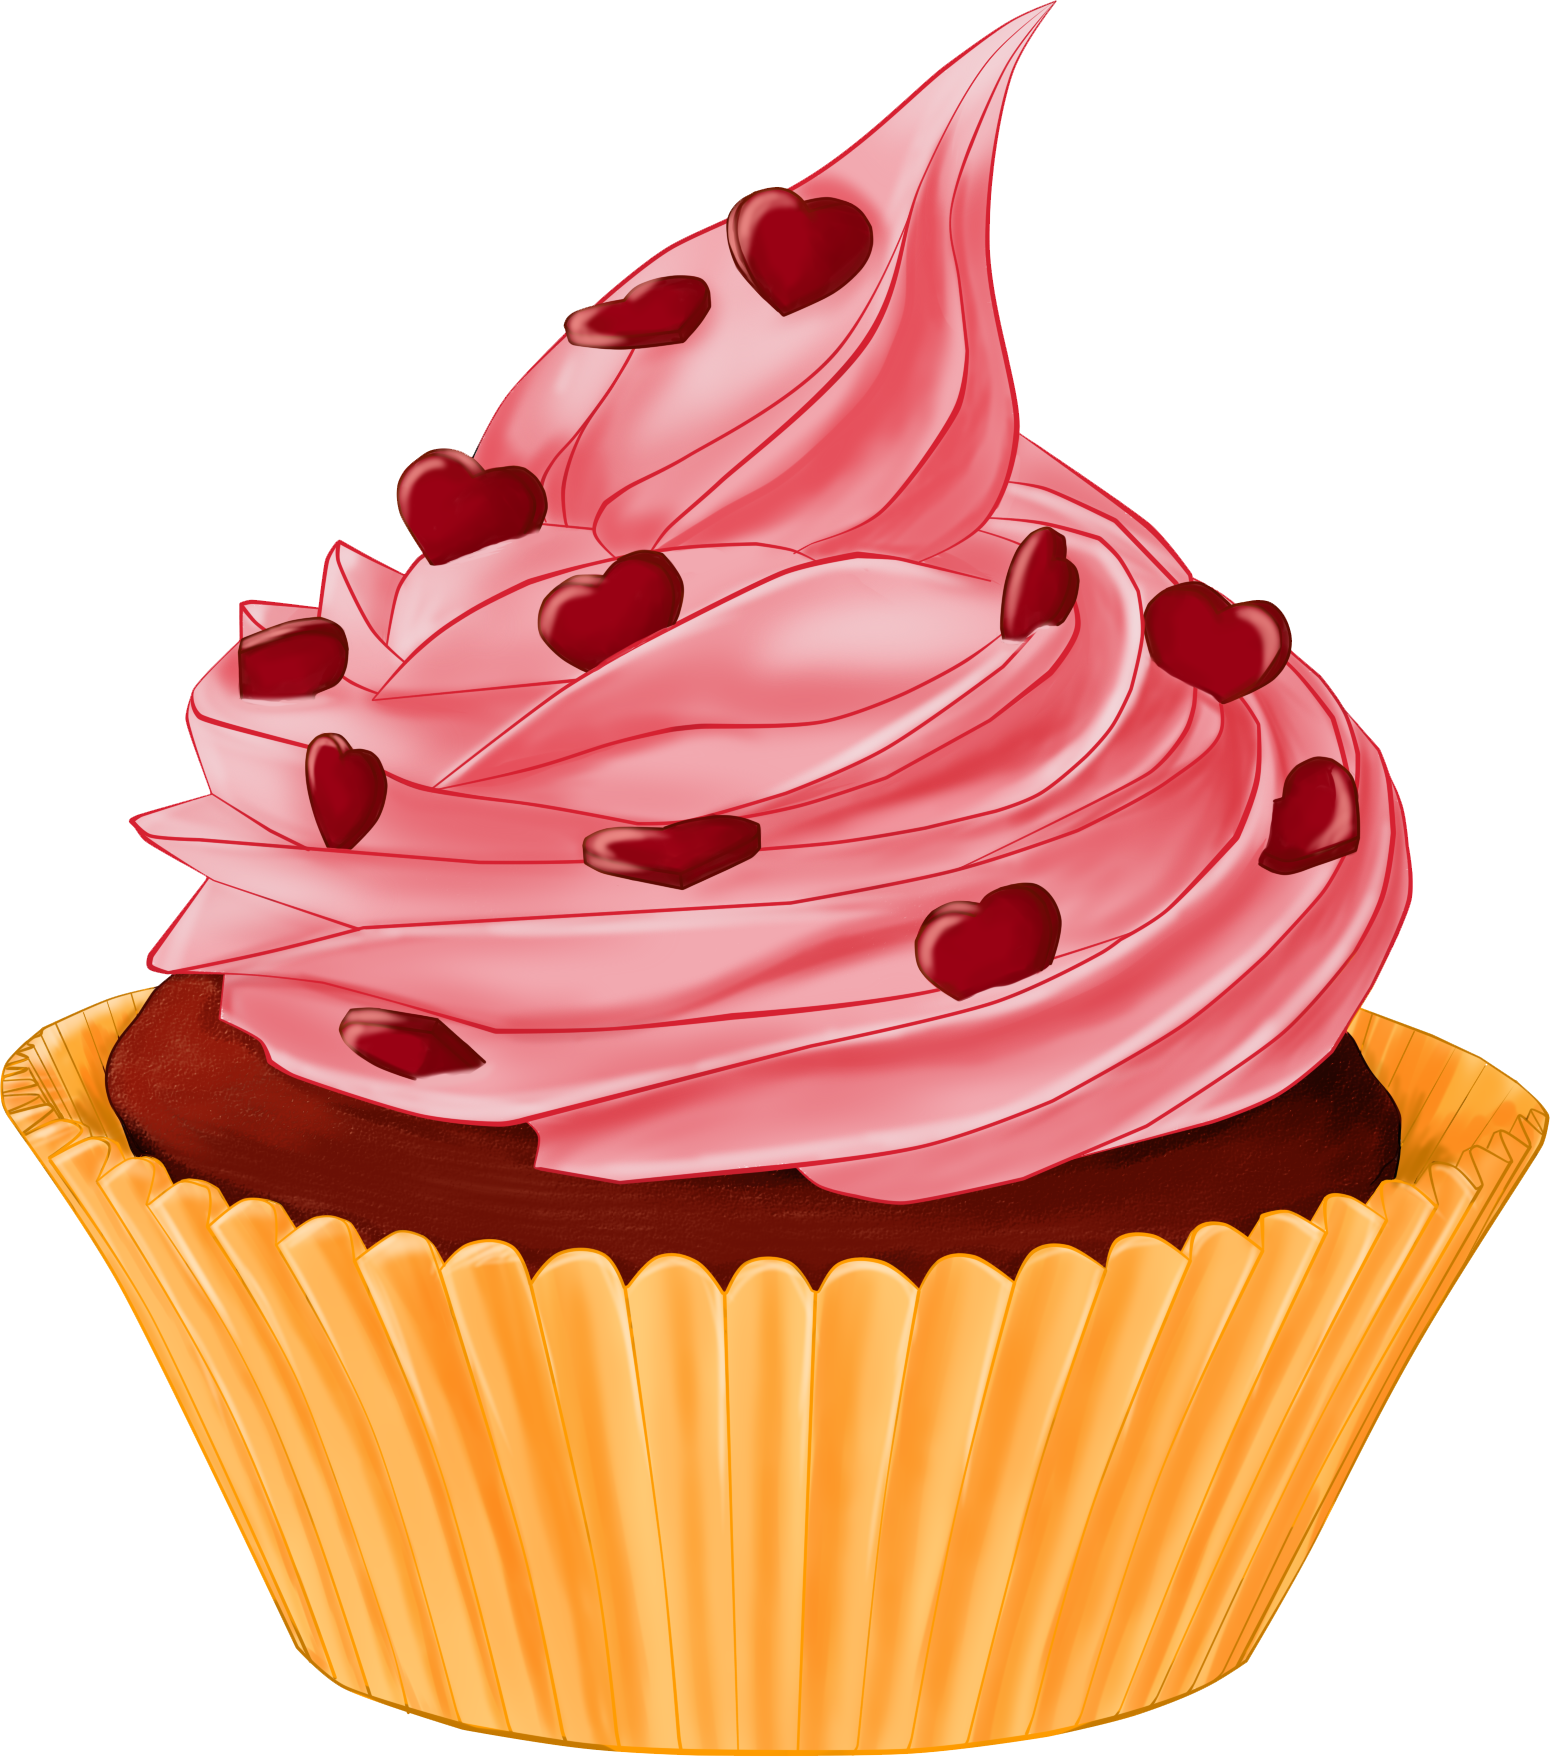 Cupcake Drawing Images : Cupcakes Drawing - Cliparts.co